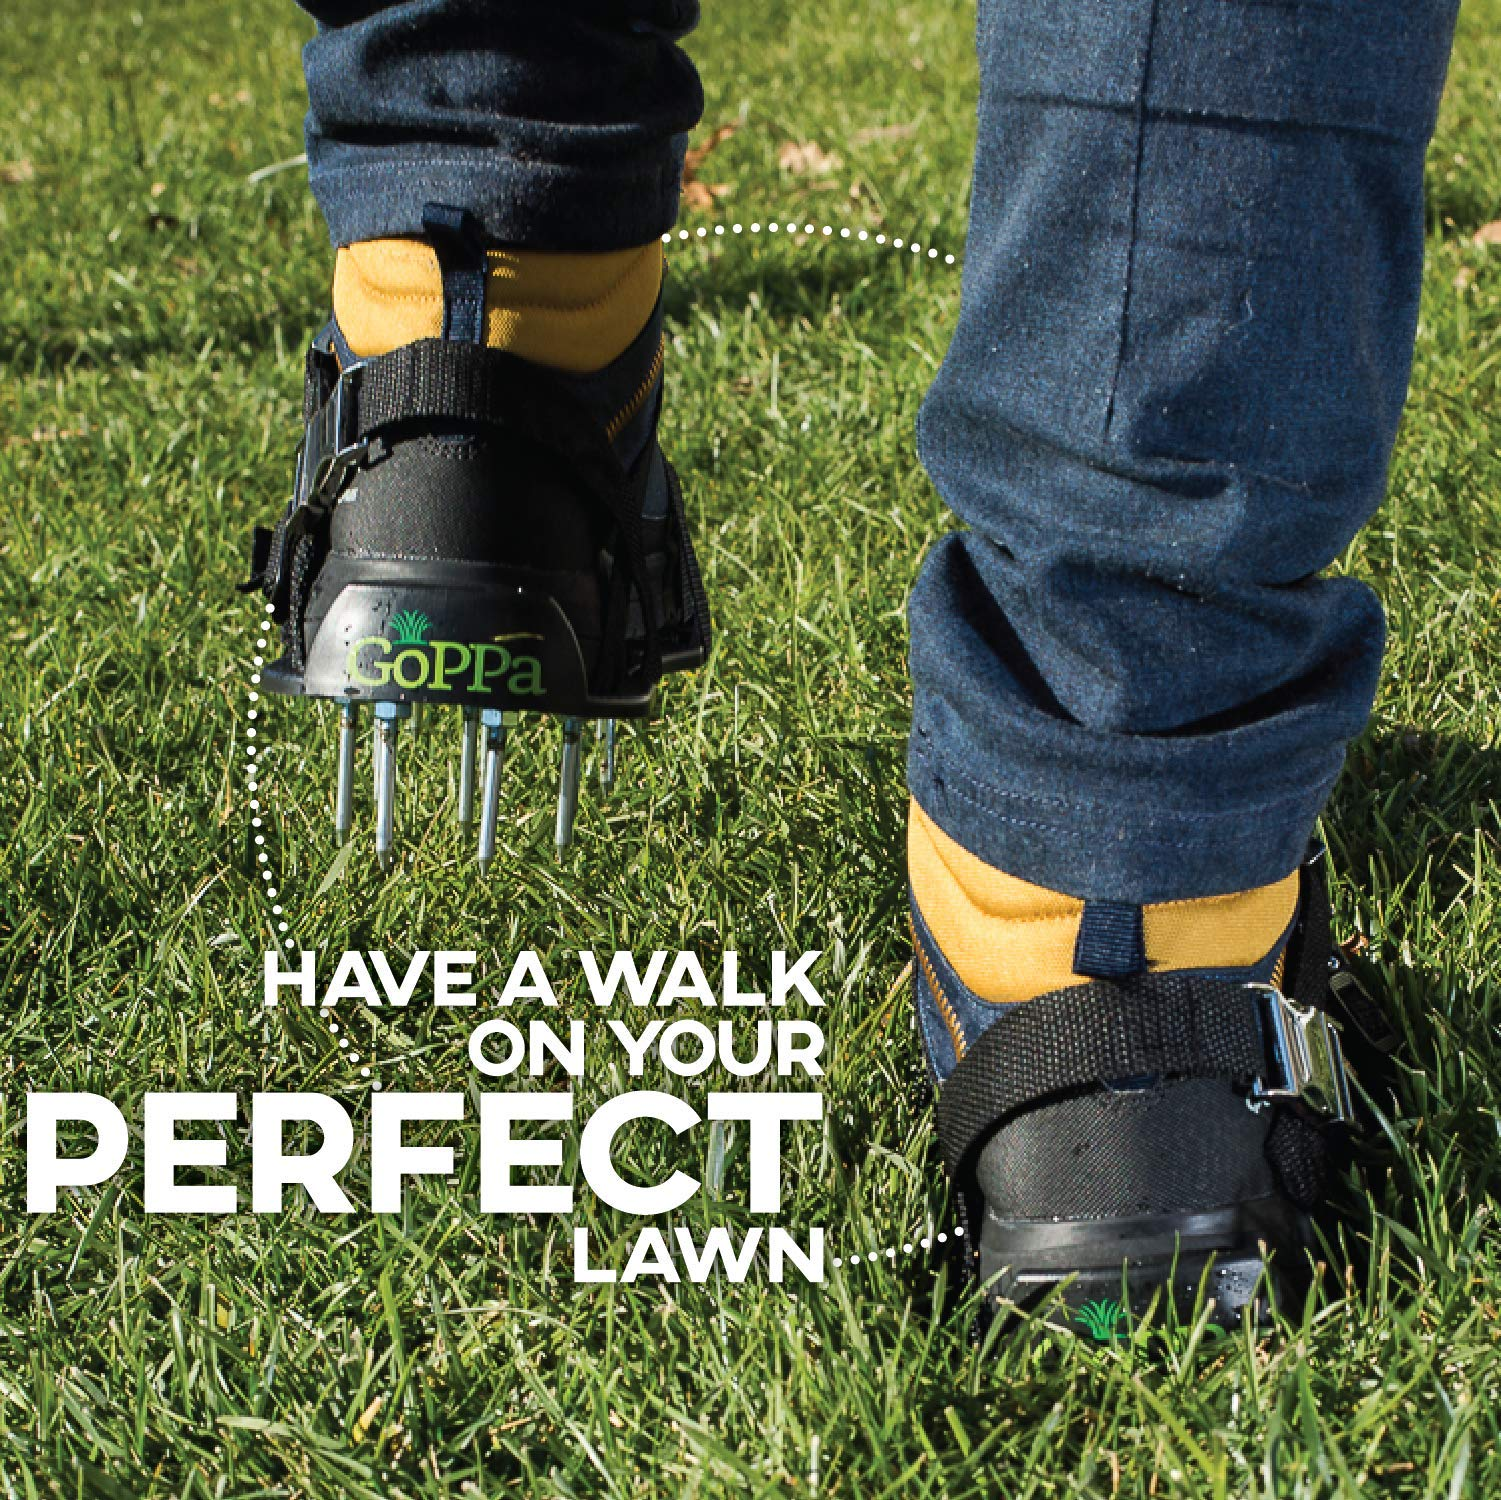 GoPPa Lawn Aerator Shoes – Heavy Duty Lawn Aerator Sandal, You only FIT Once. Ready for aerating Your Yard, Lawn, Roots & Grass – Strong Design by GoPPa (Image #9)